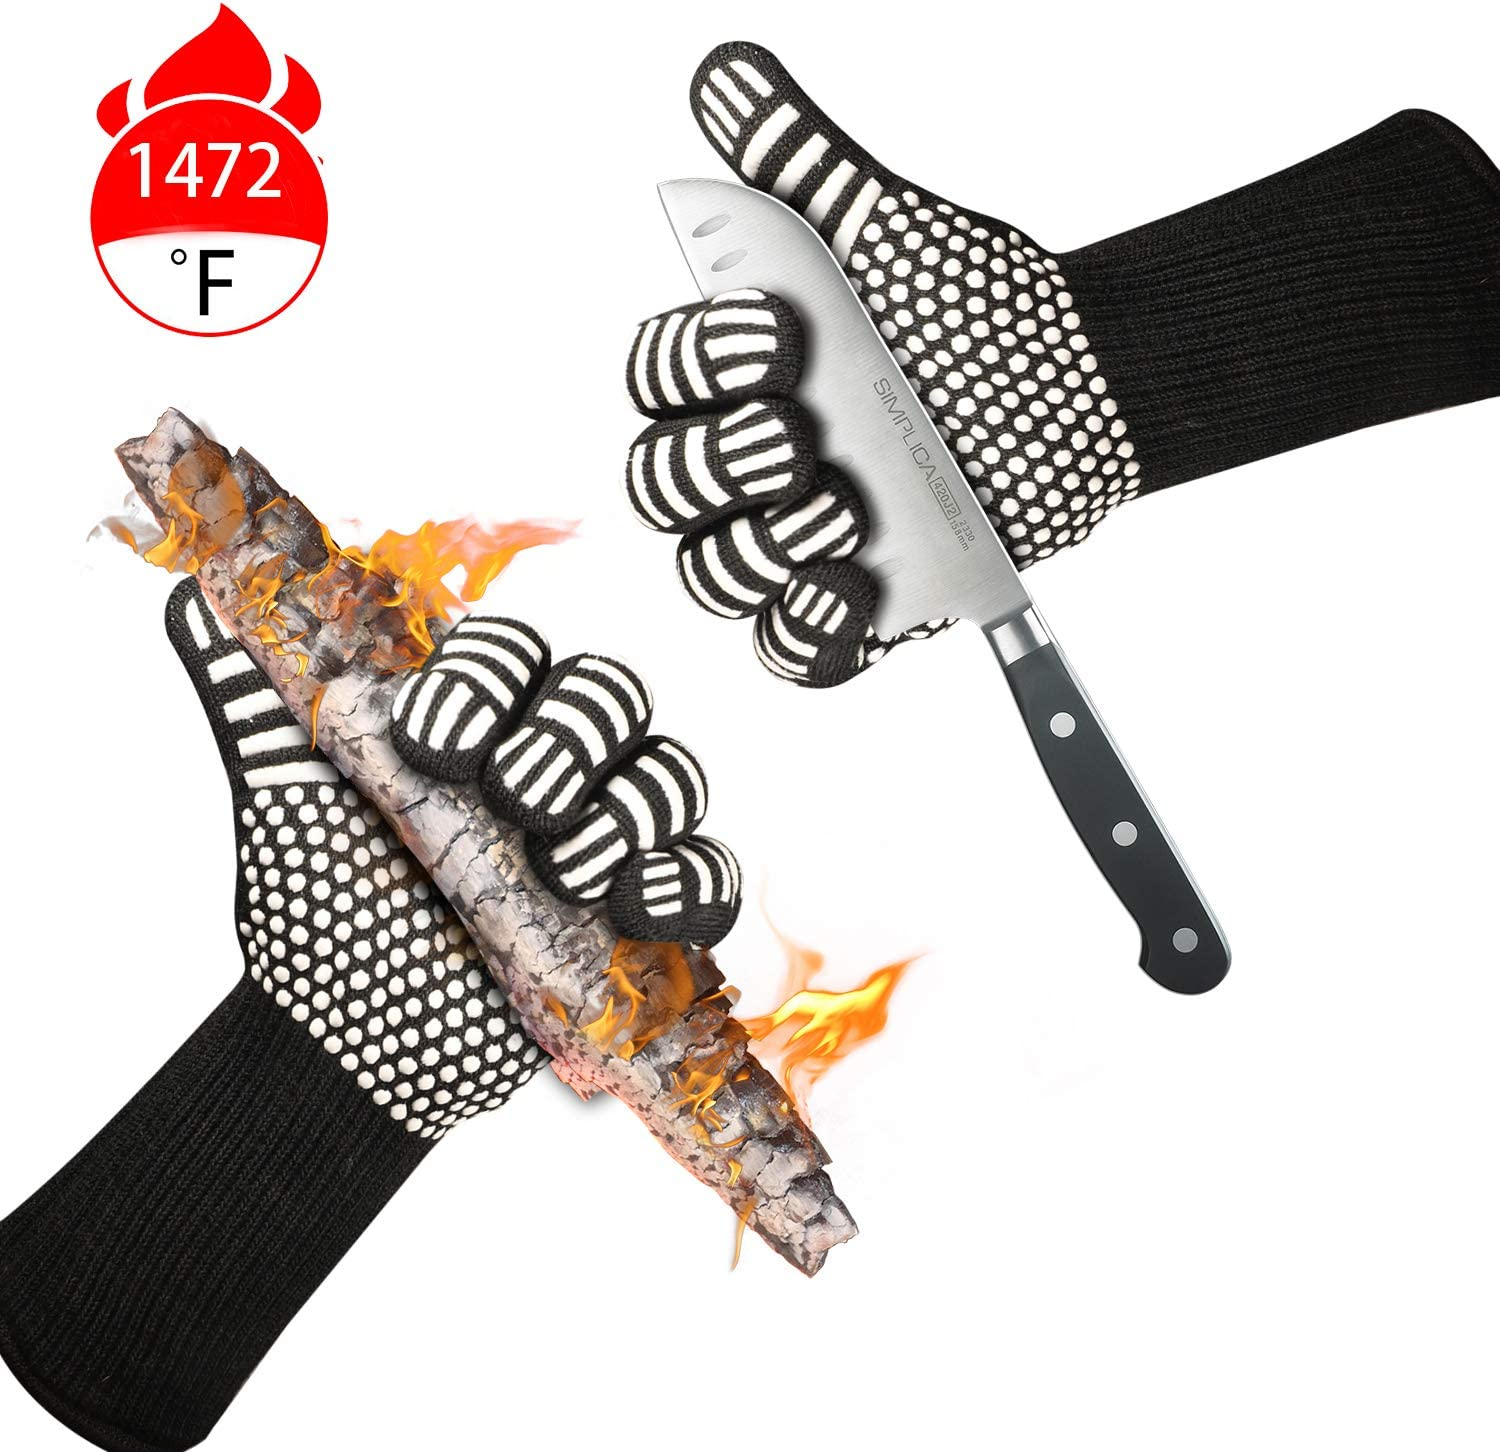 Misphly BBQ Grill Gloves,1472℉ Heat Resistant Oven Mitt Gloves,Oven Silicone Glove Fireproof for Smoker Baking,Extra Long Sleeves to Prevent Forearm Burns Grilling Gloves for Cooking (White)